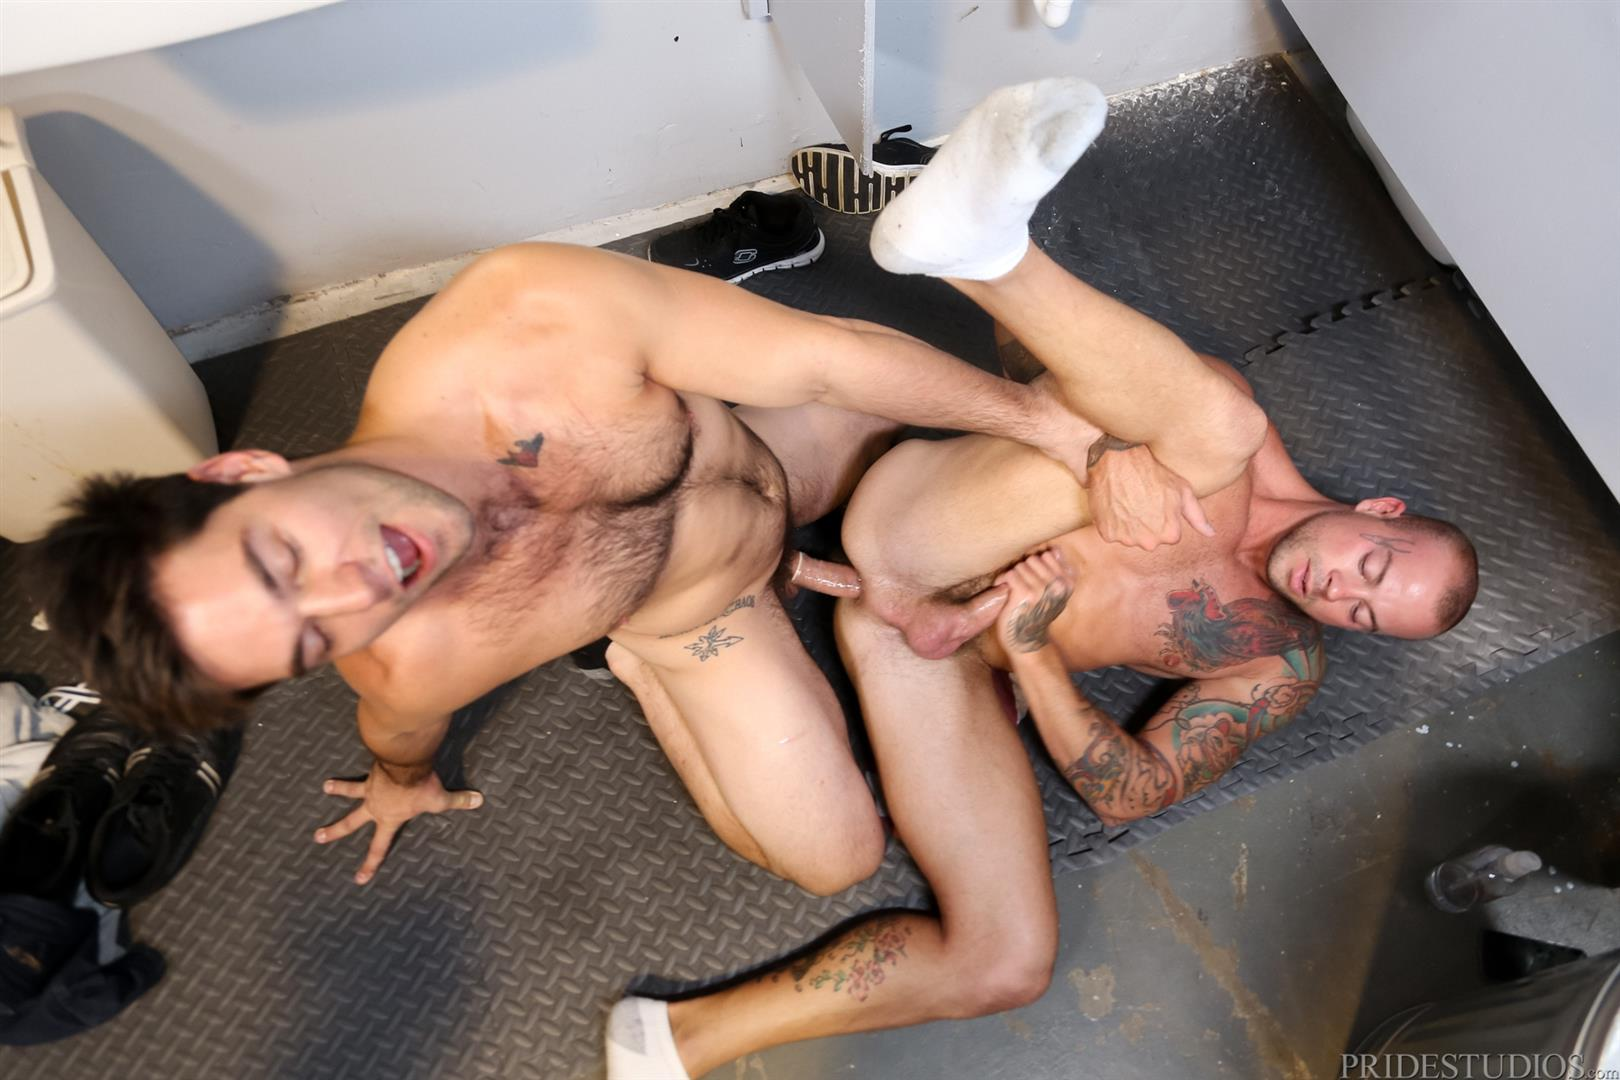 Extra Big Dicks Sean Duran Fucking Through A Glory Hole Amateur Gay Porn 15 Getting Fucked By A Big Fat Cock Through a Glory Hole